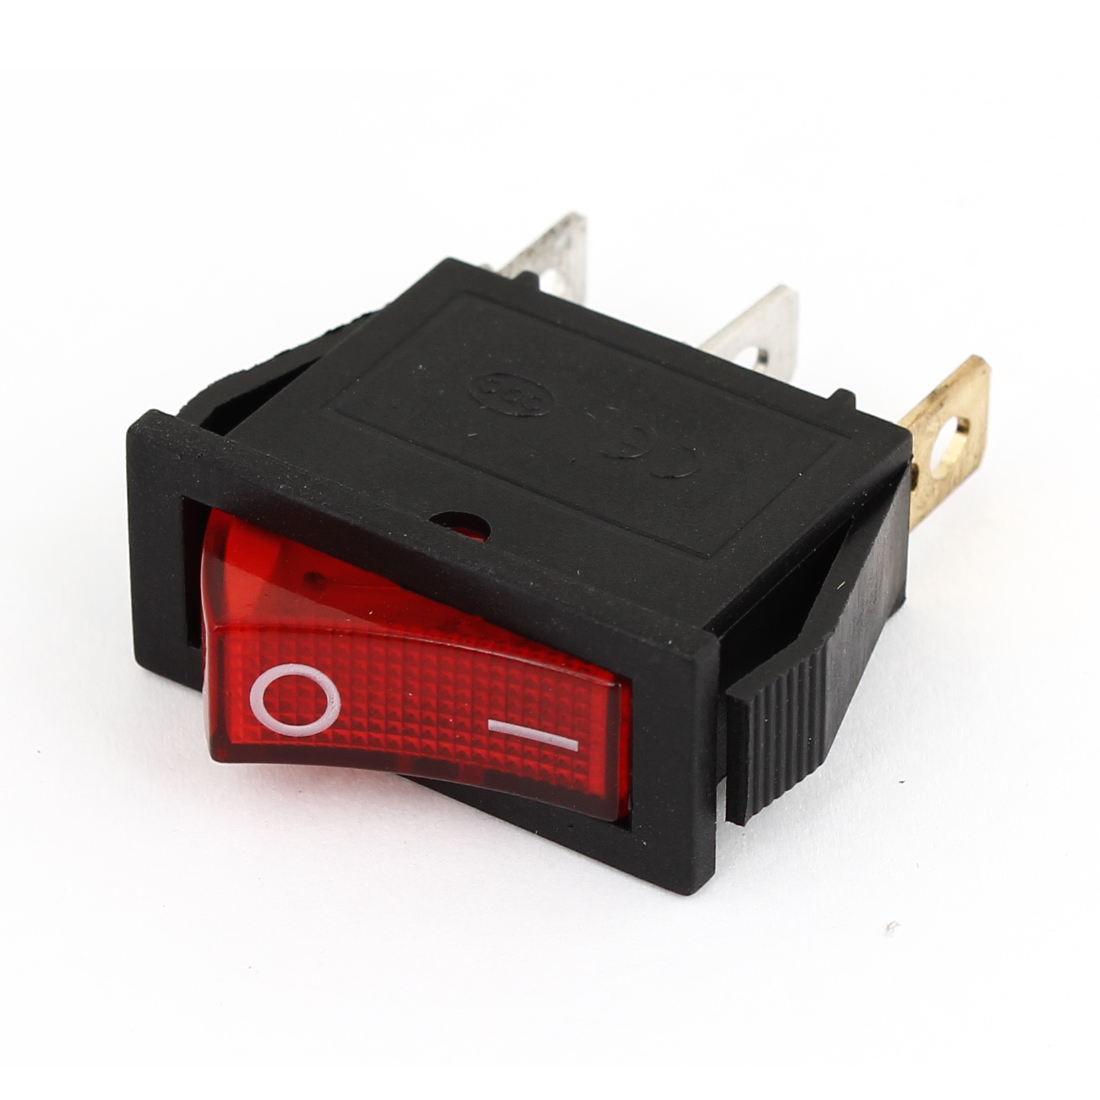 Red LED Lamp 2 Position ON/OFF Rocker Switch AC 15A/250V 20A/125V for Vehicle